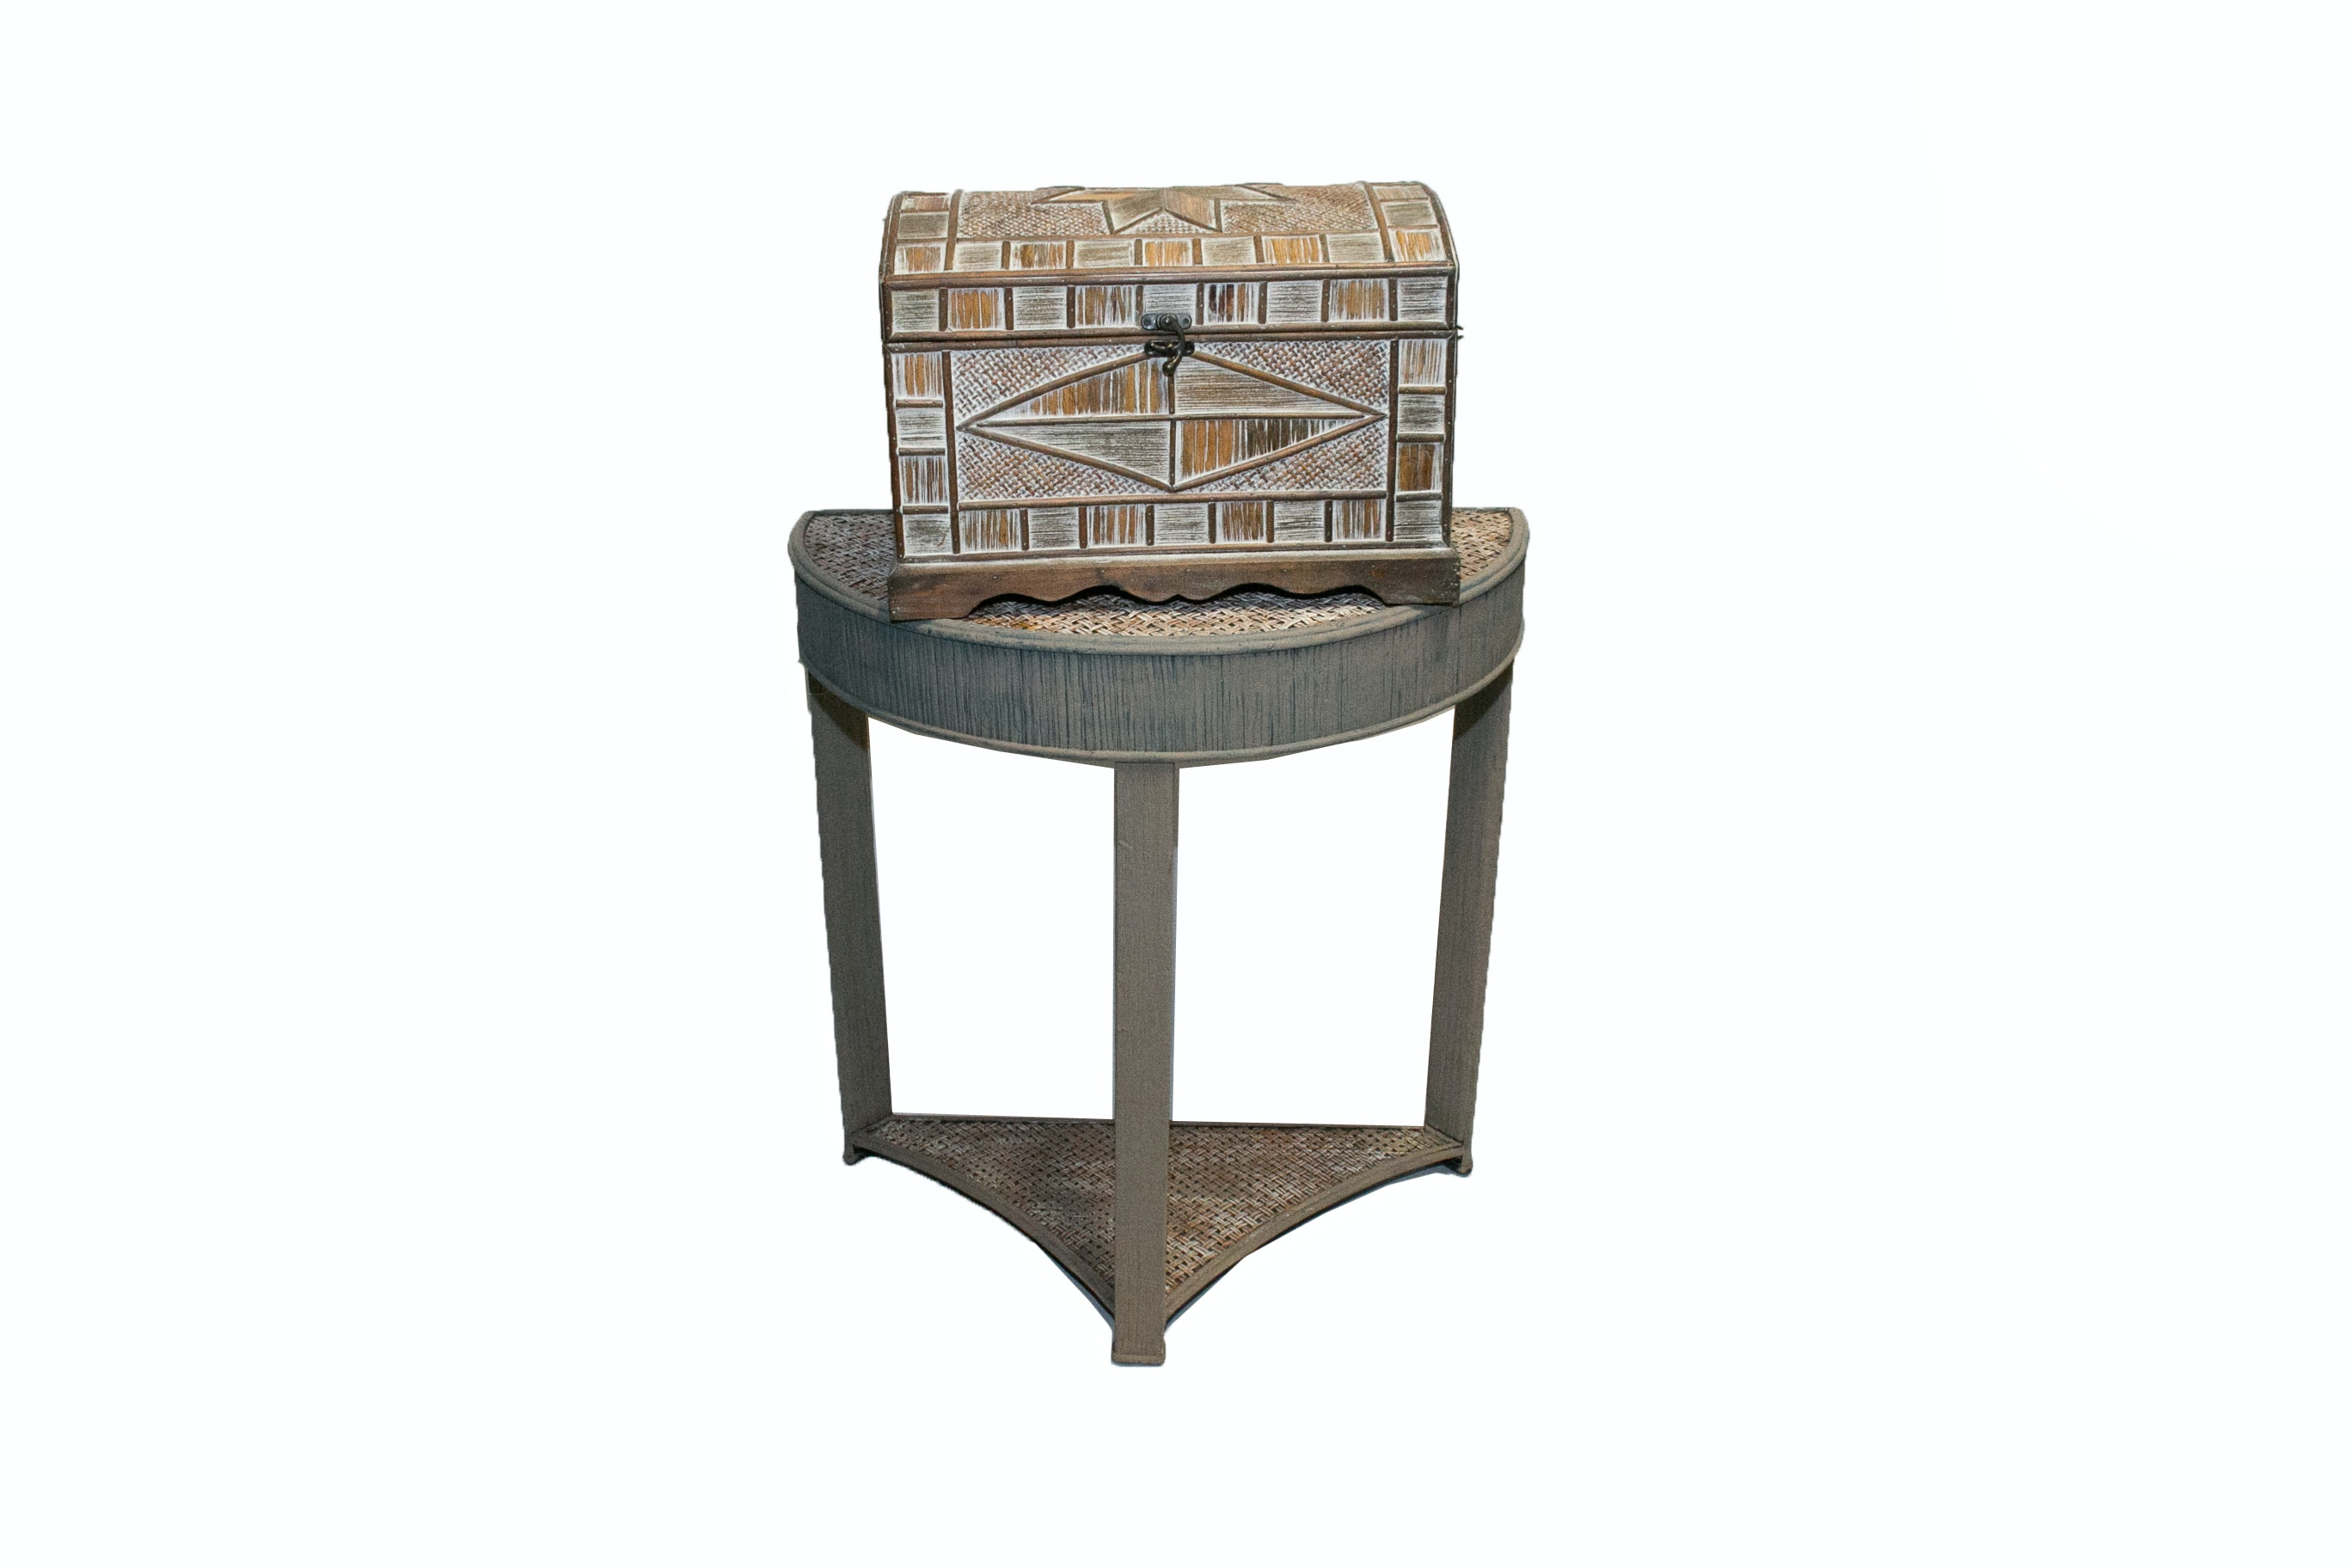 Woven Demilune Table and Chest